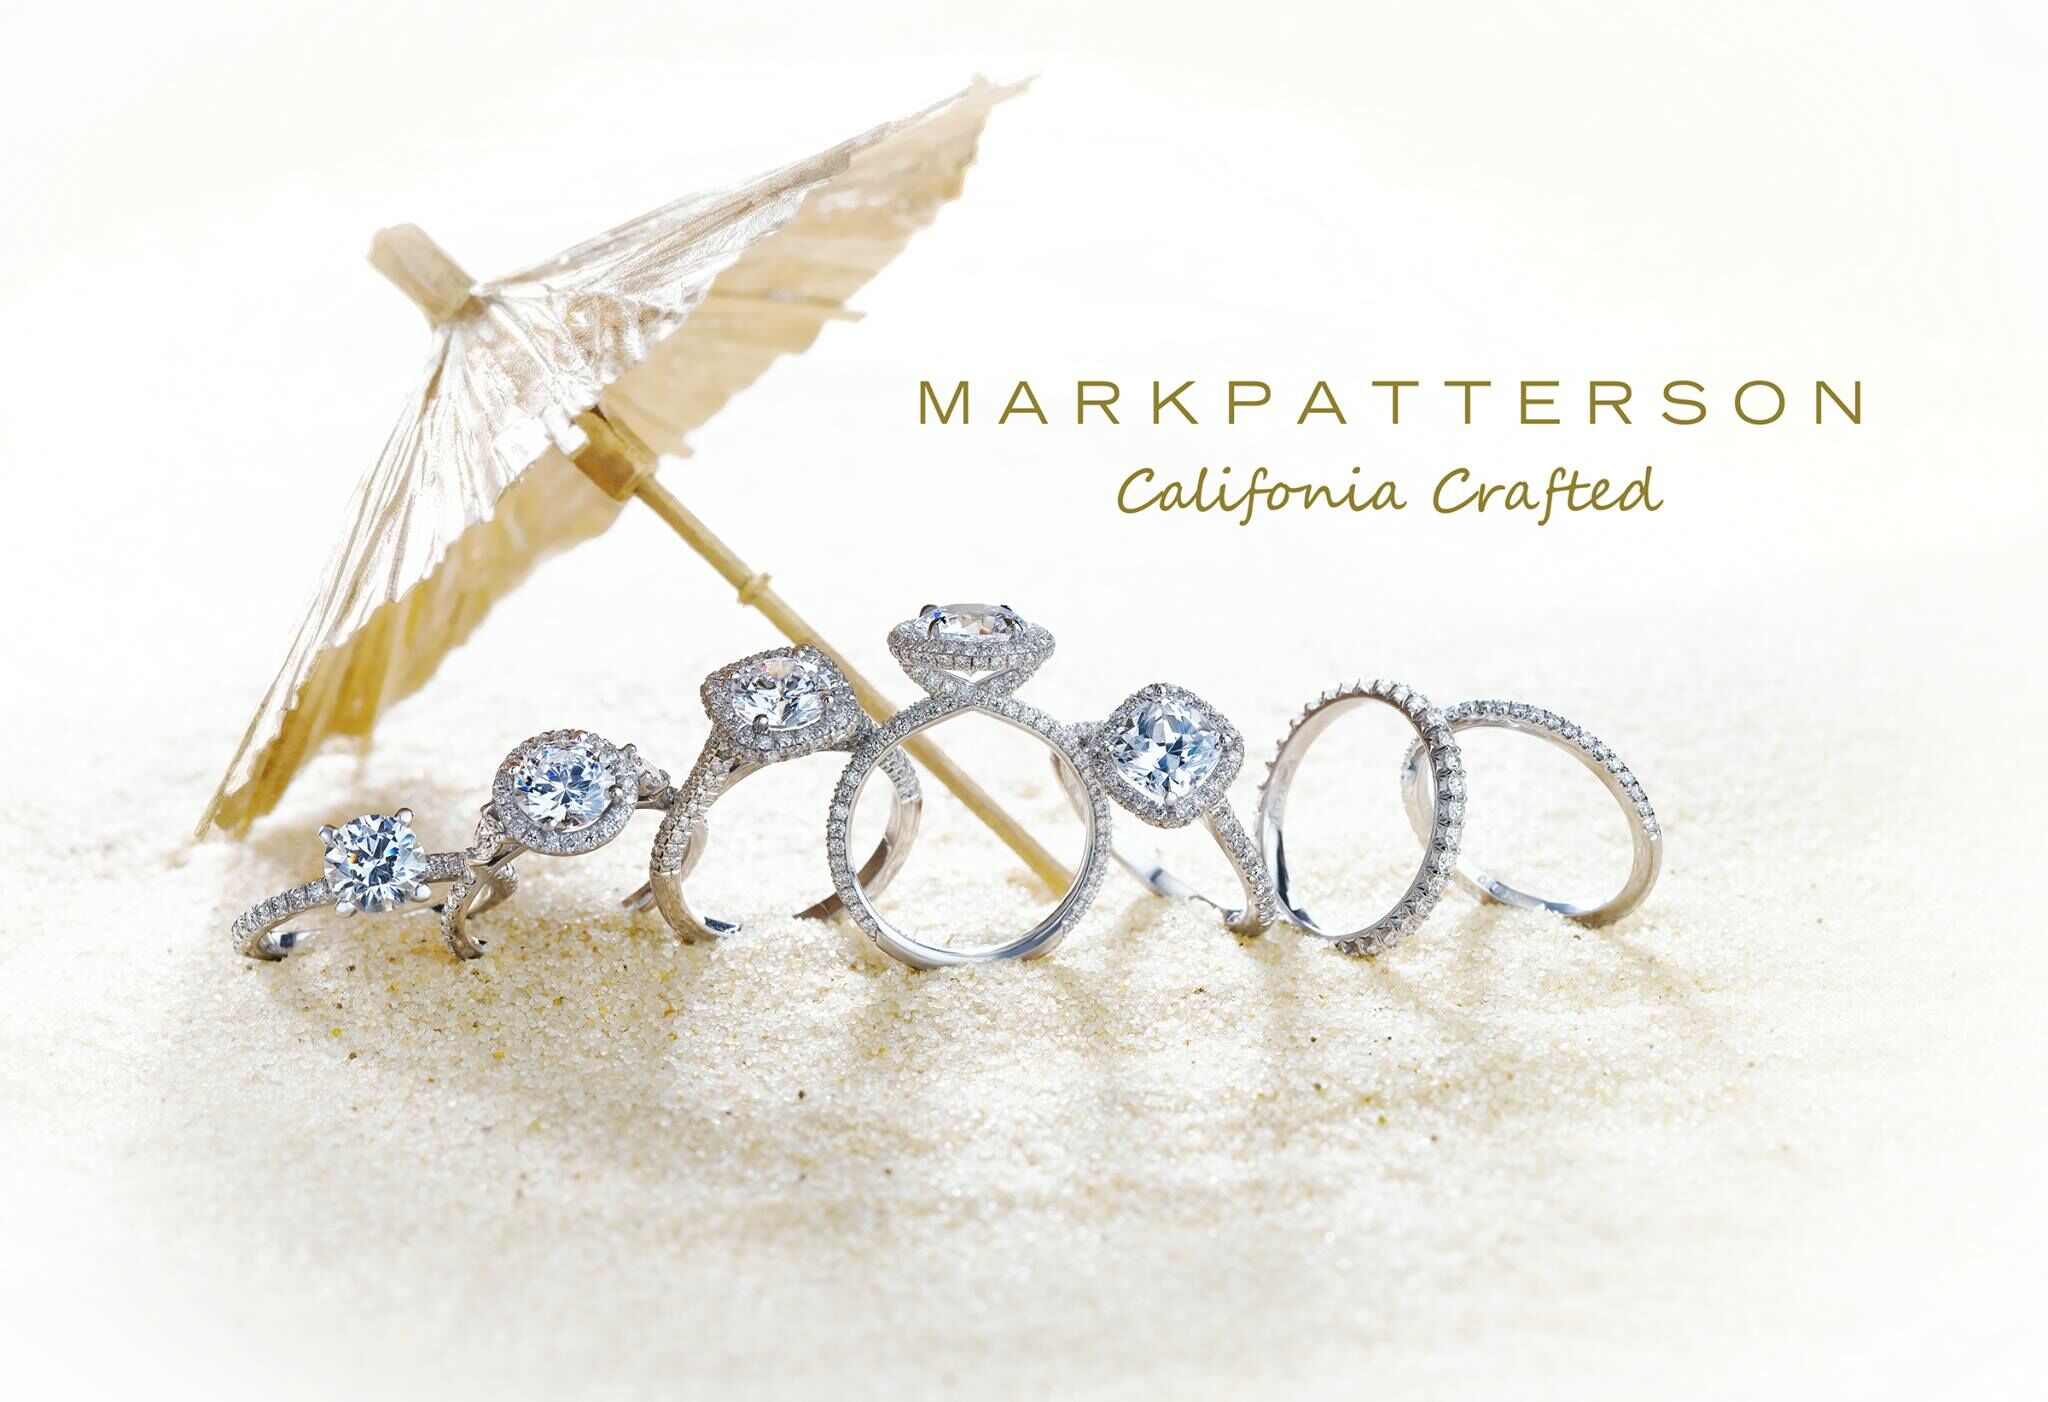 colorado mark wedding steven engagement rings bridal kretchmer designer denver patterson backlitposter ring